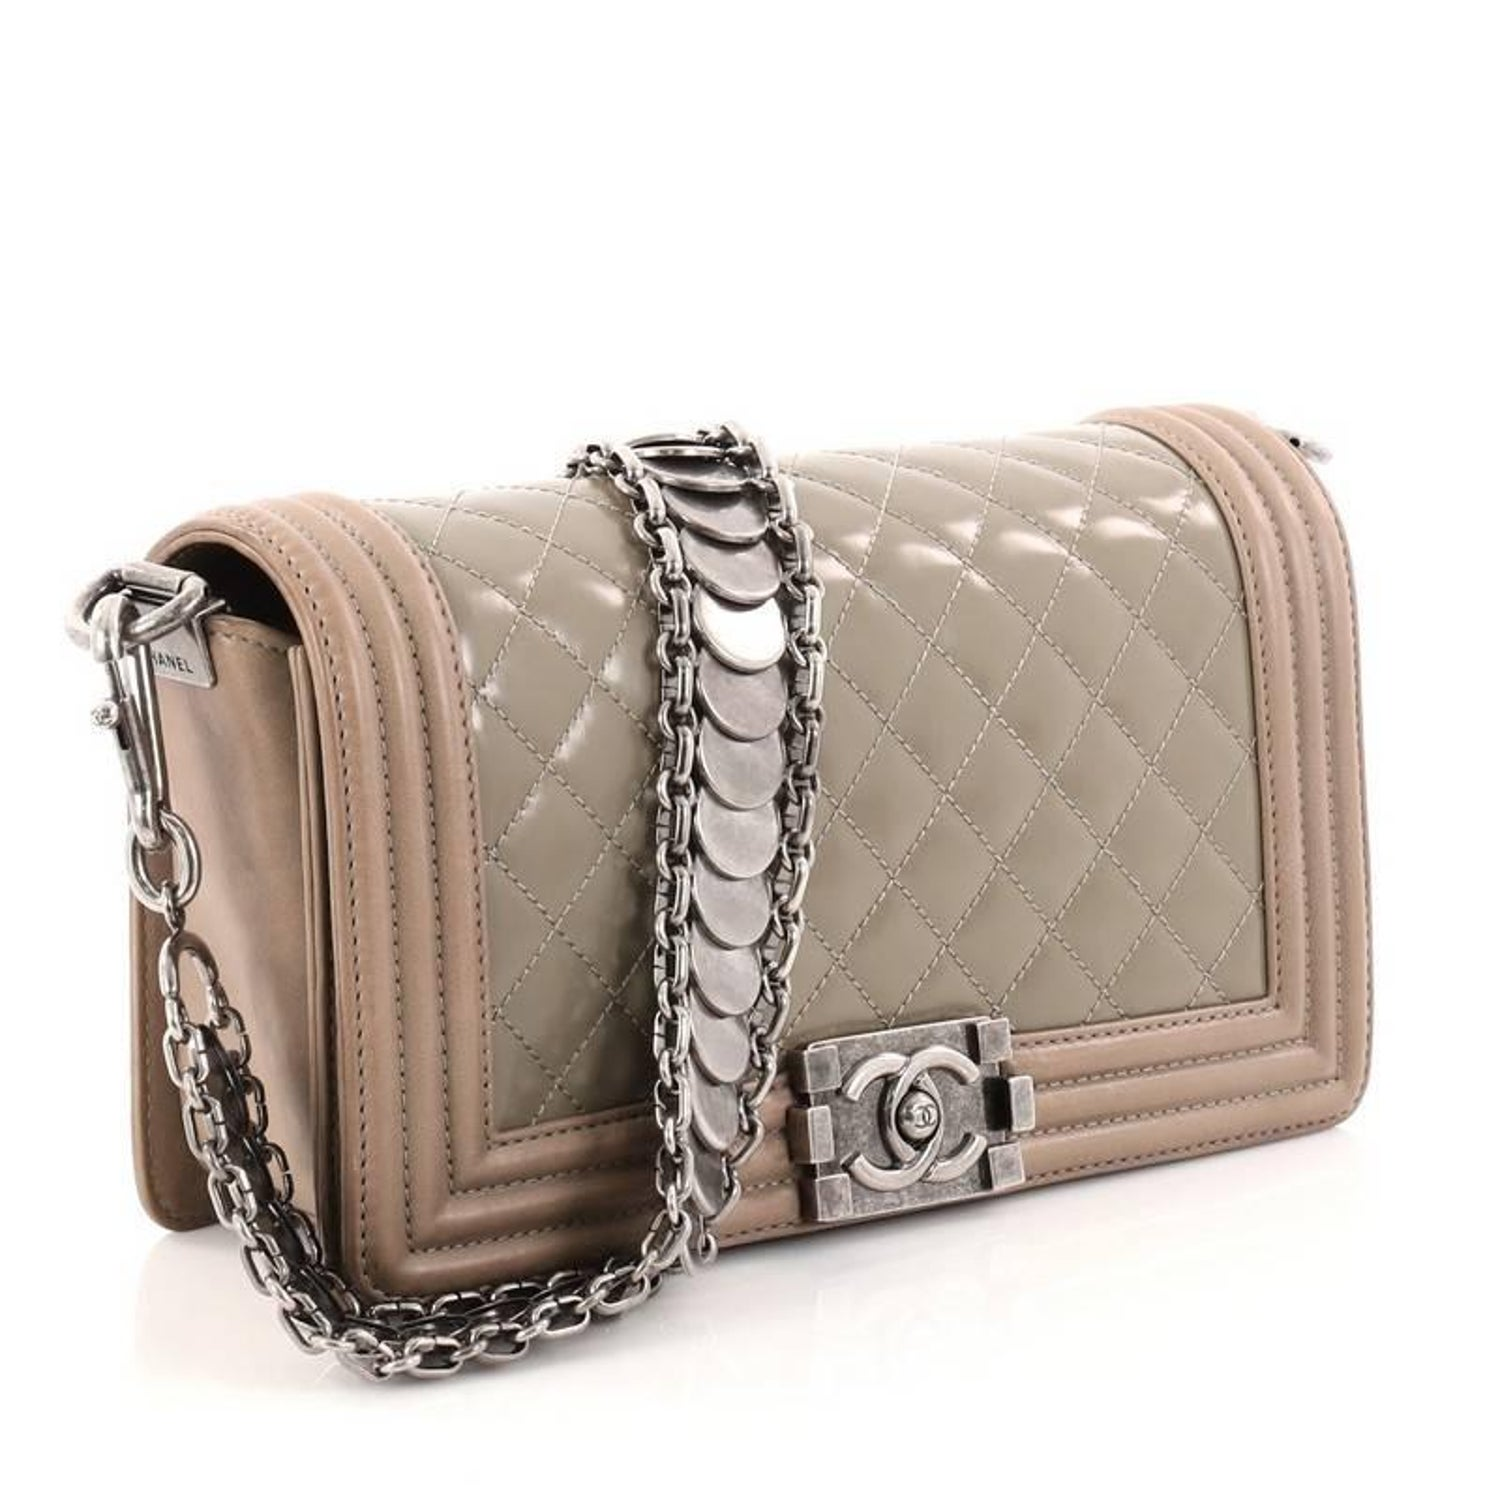 8ba88963544d Chanel Medallion Boy Flap Bag Quilted Glazed Calfskin with Leather Old  Medium at 1stdibs